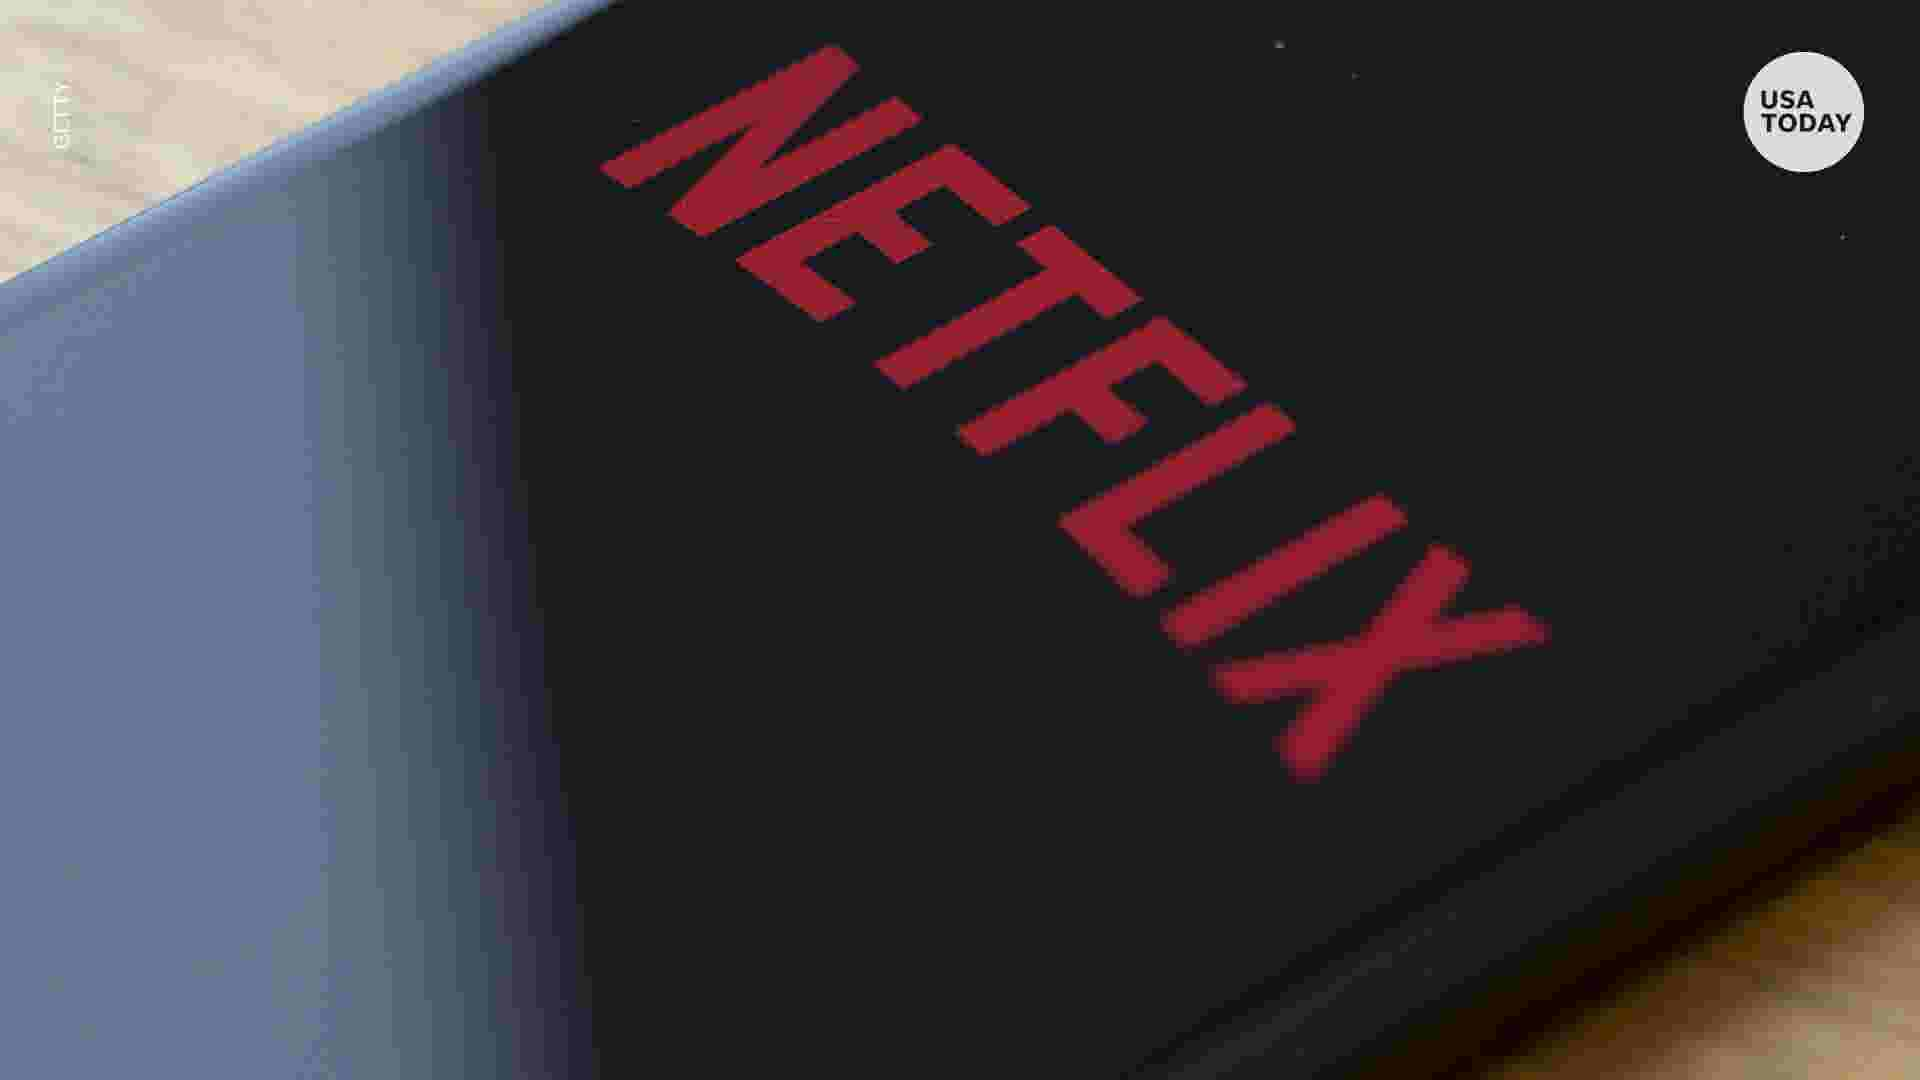 Netflix in August: 'Now and Then' and 'Mindhunter' in